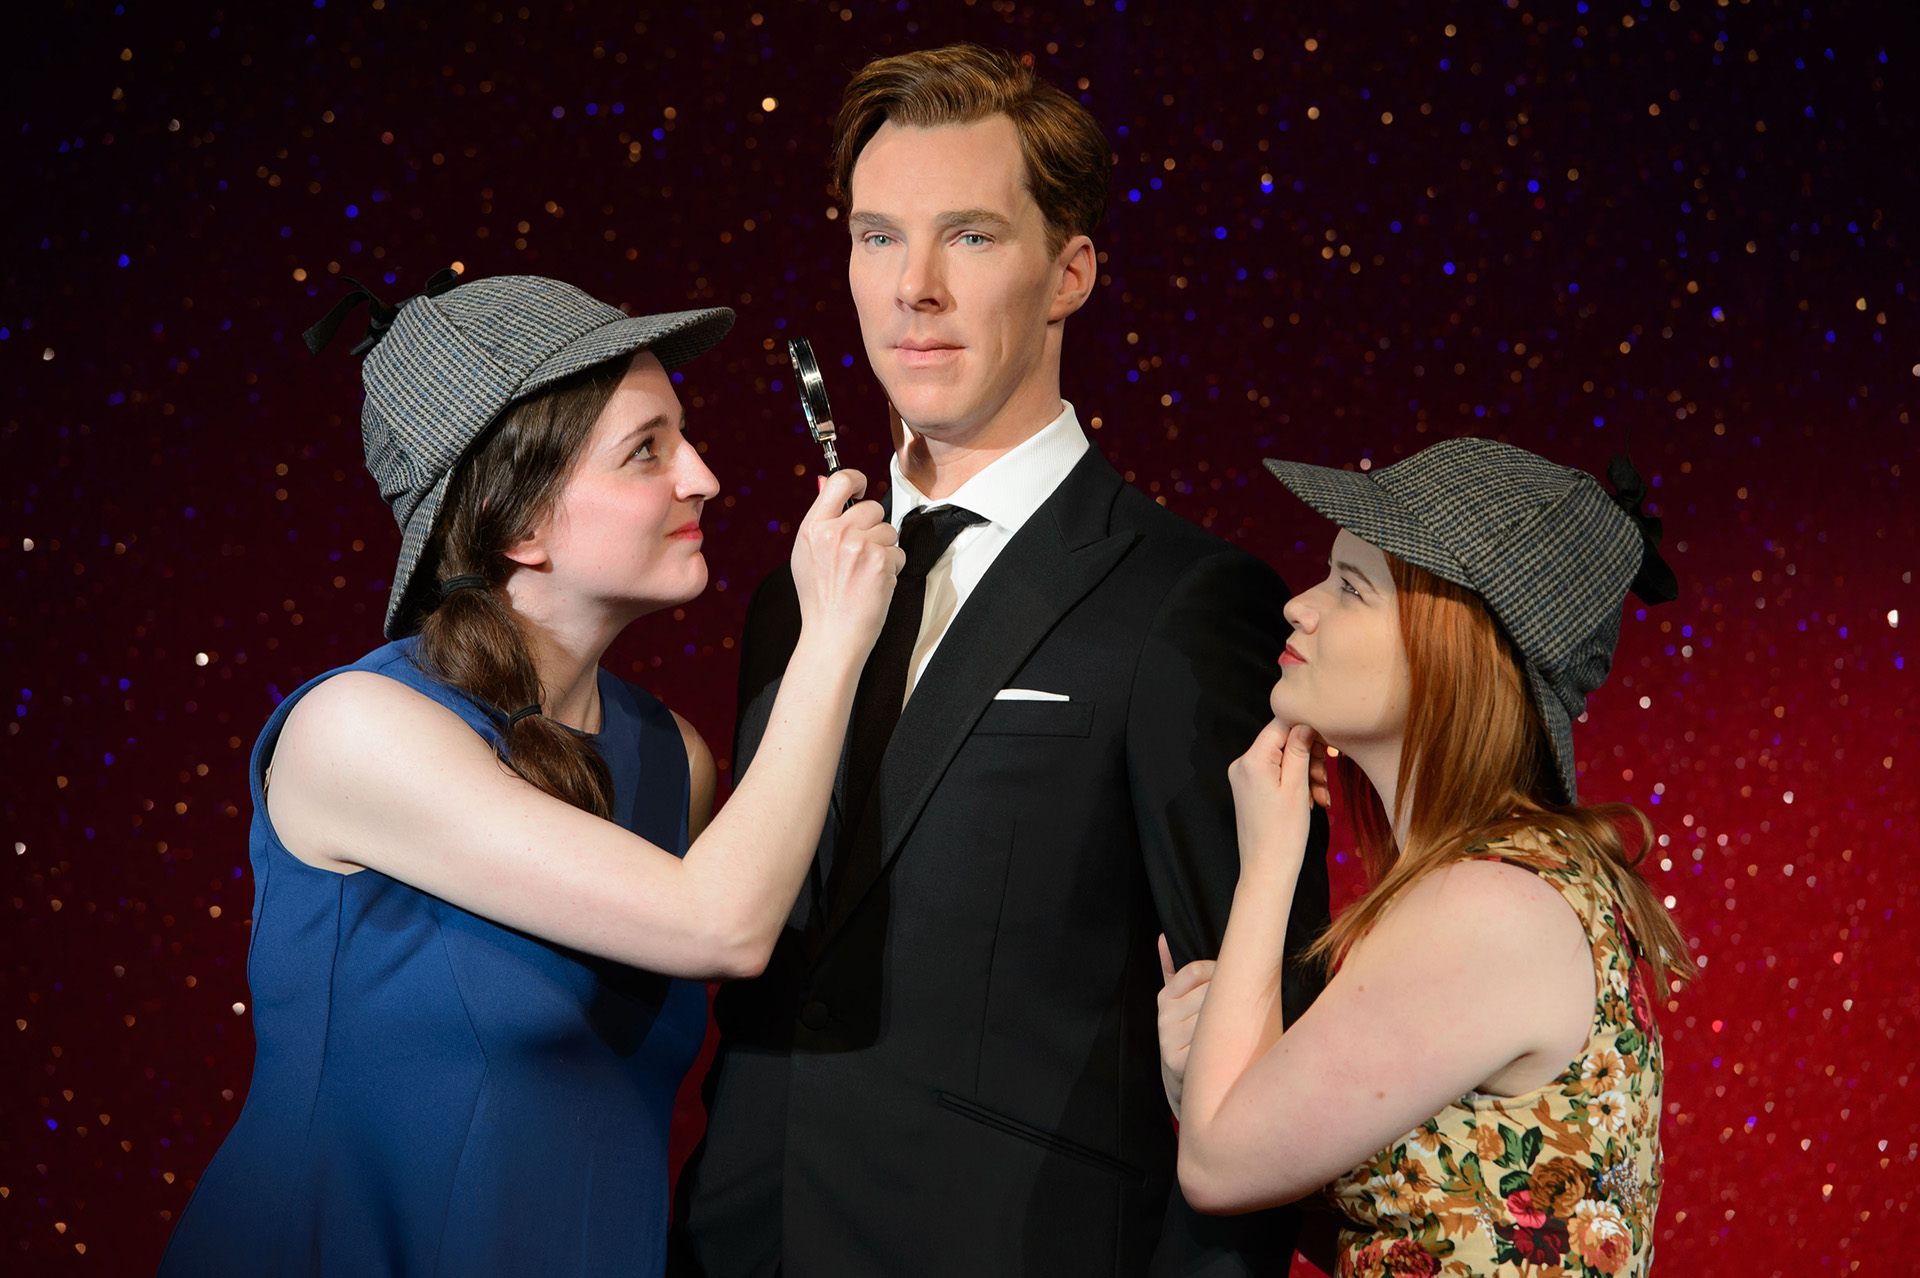 Fans taking a closer look at Benedict Cumberbatch figure